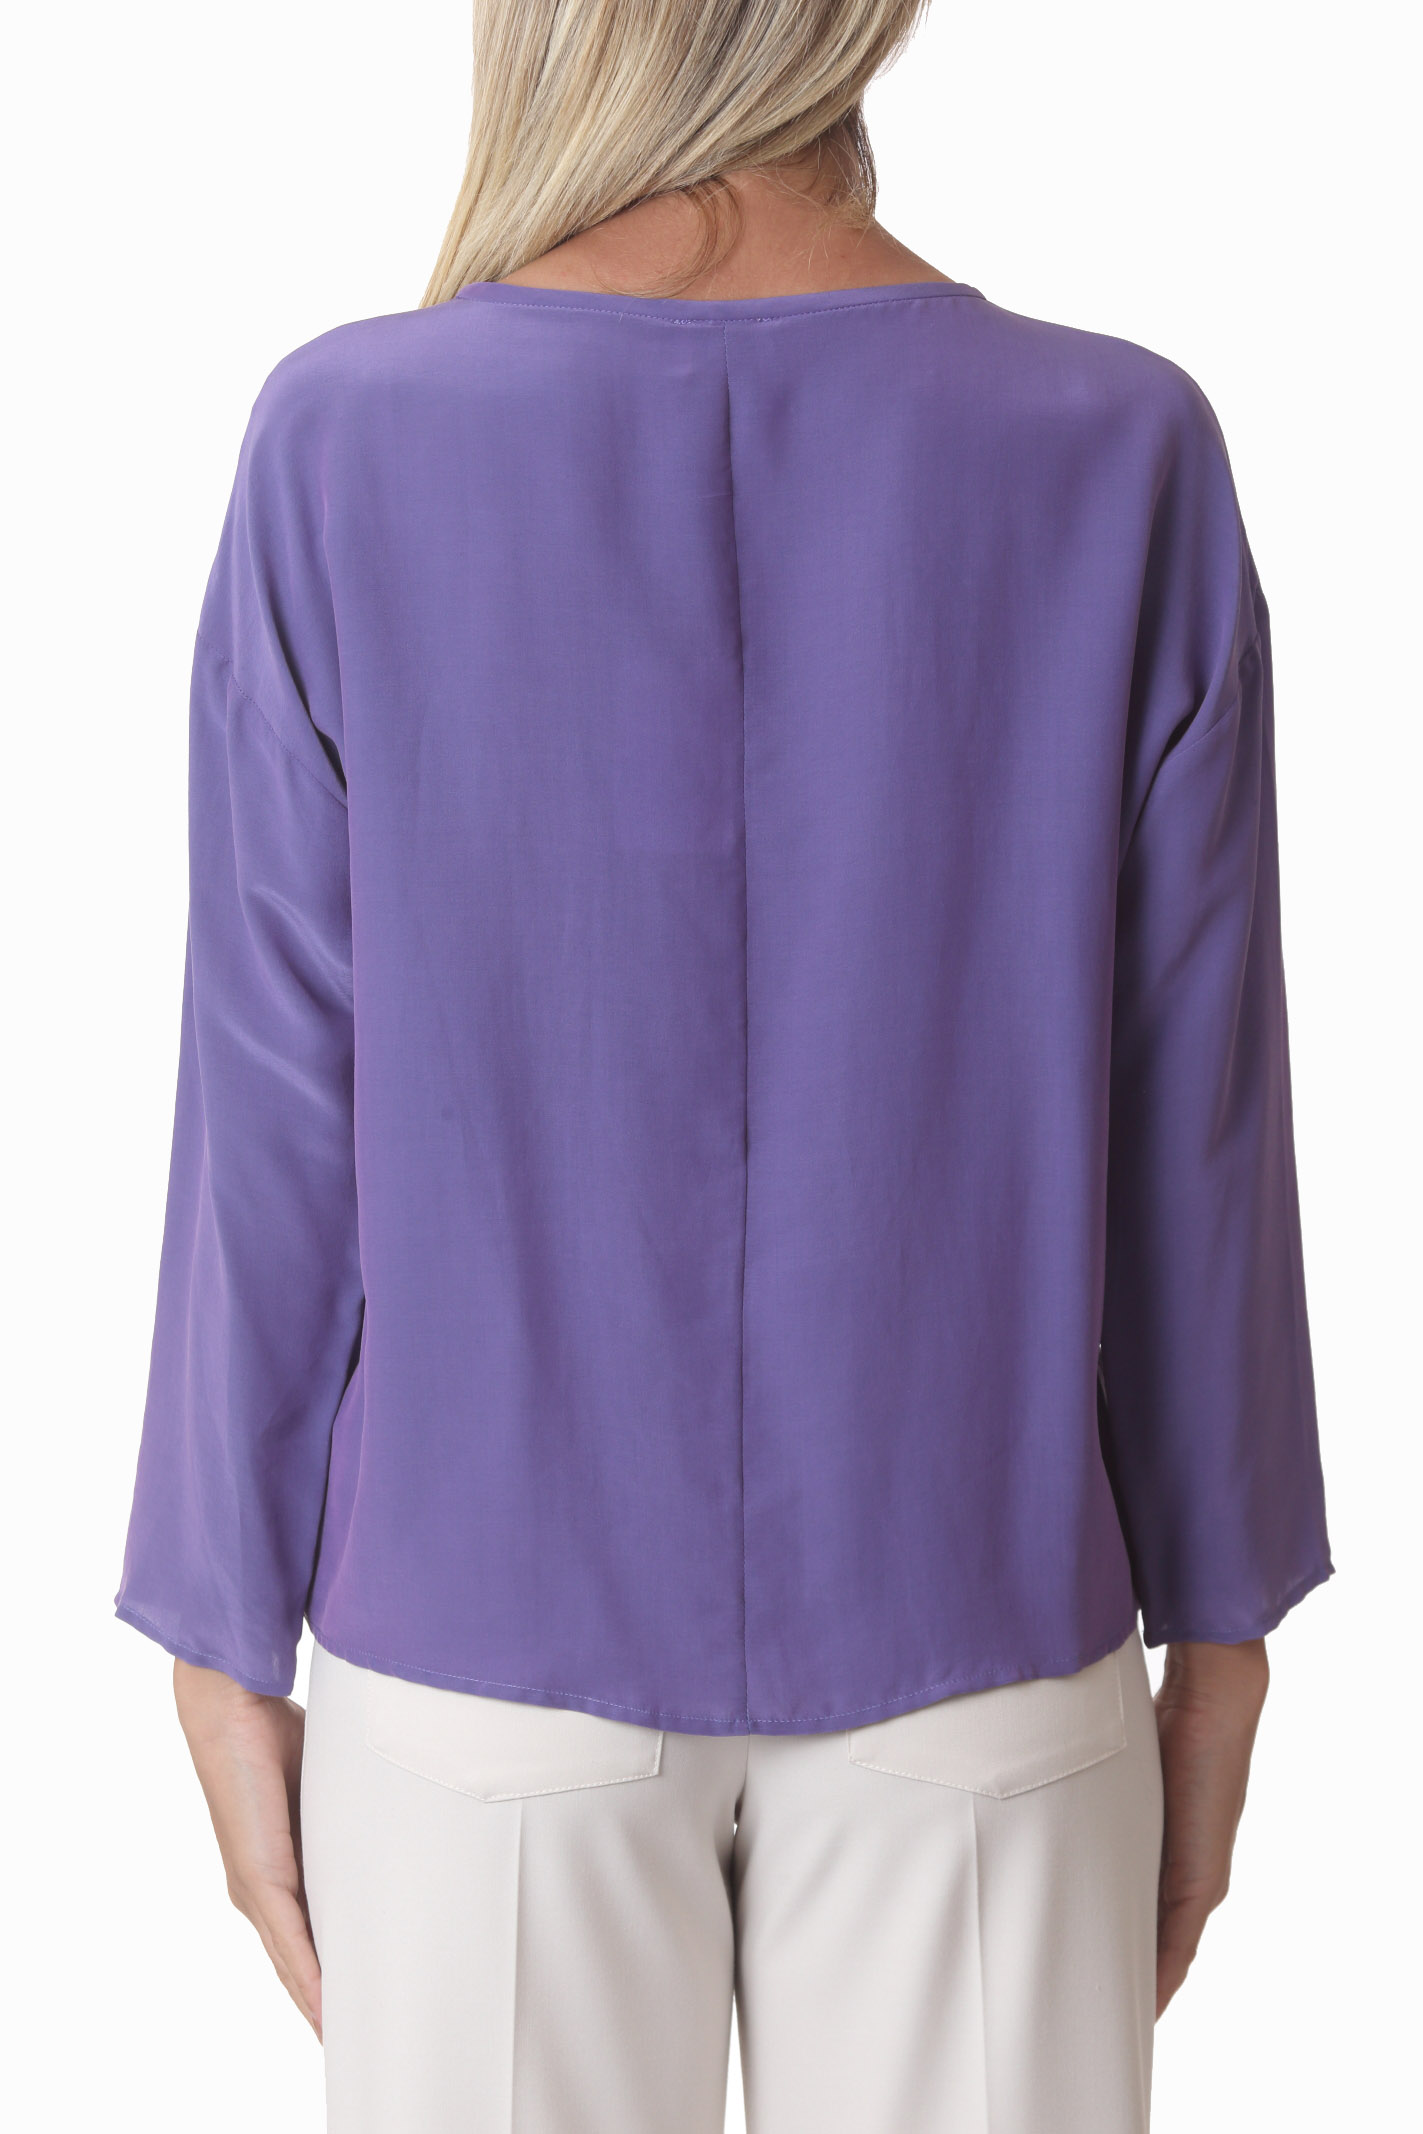 Blusa donna Alonso ATTIC AND BARN | Bluse | A21-ATBL004-AT160465